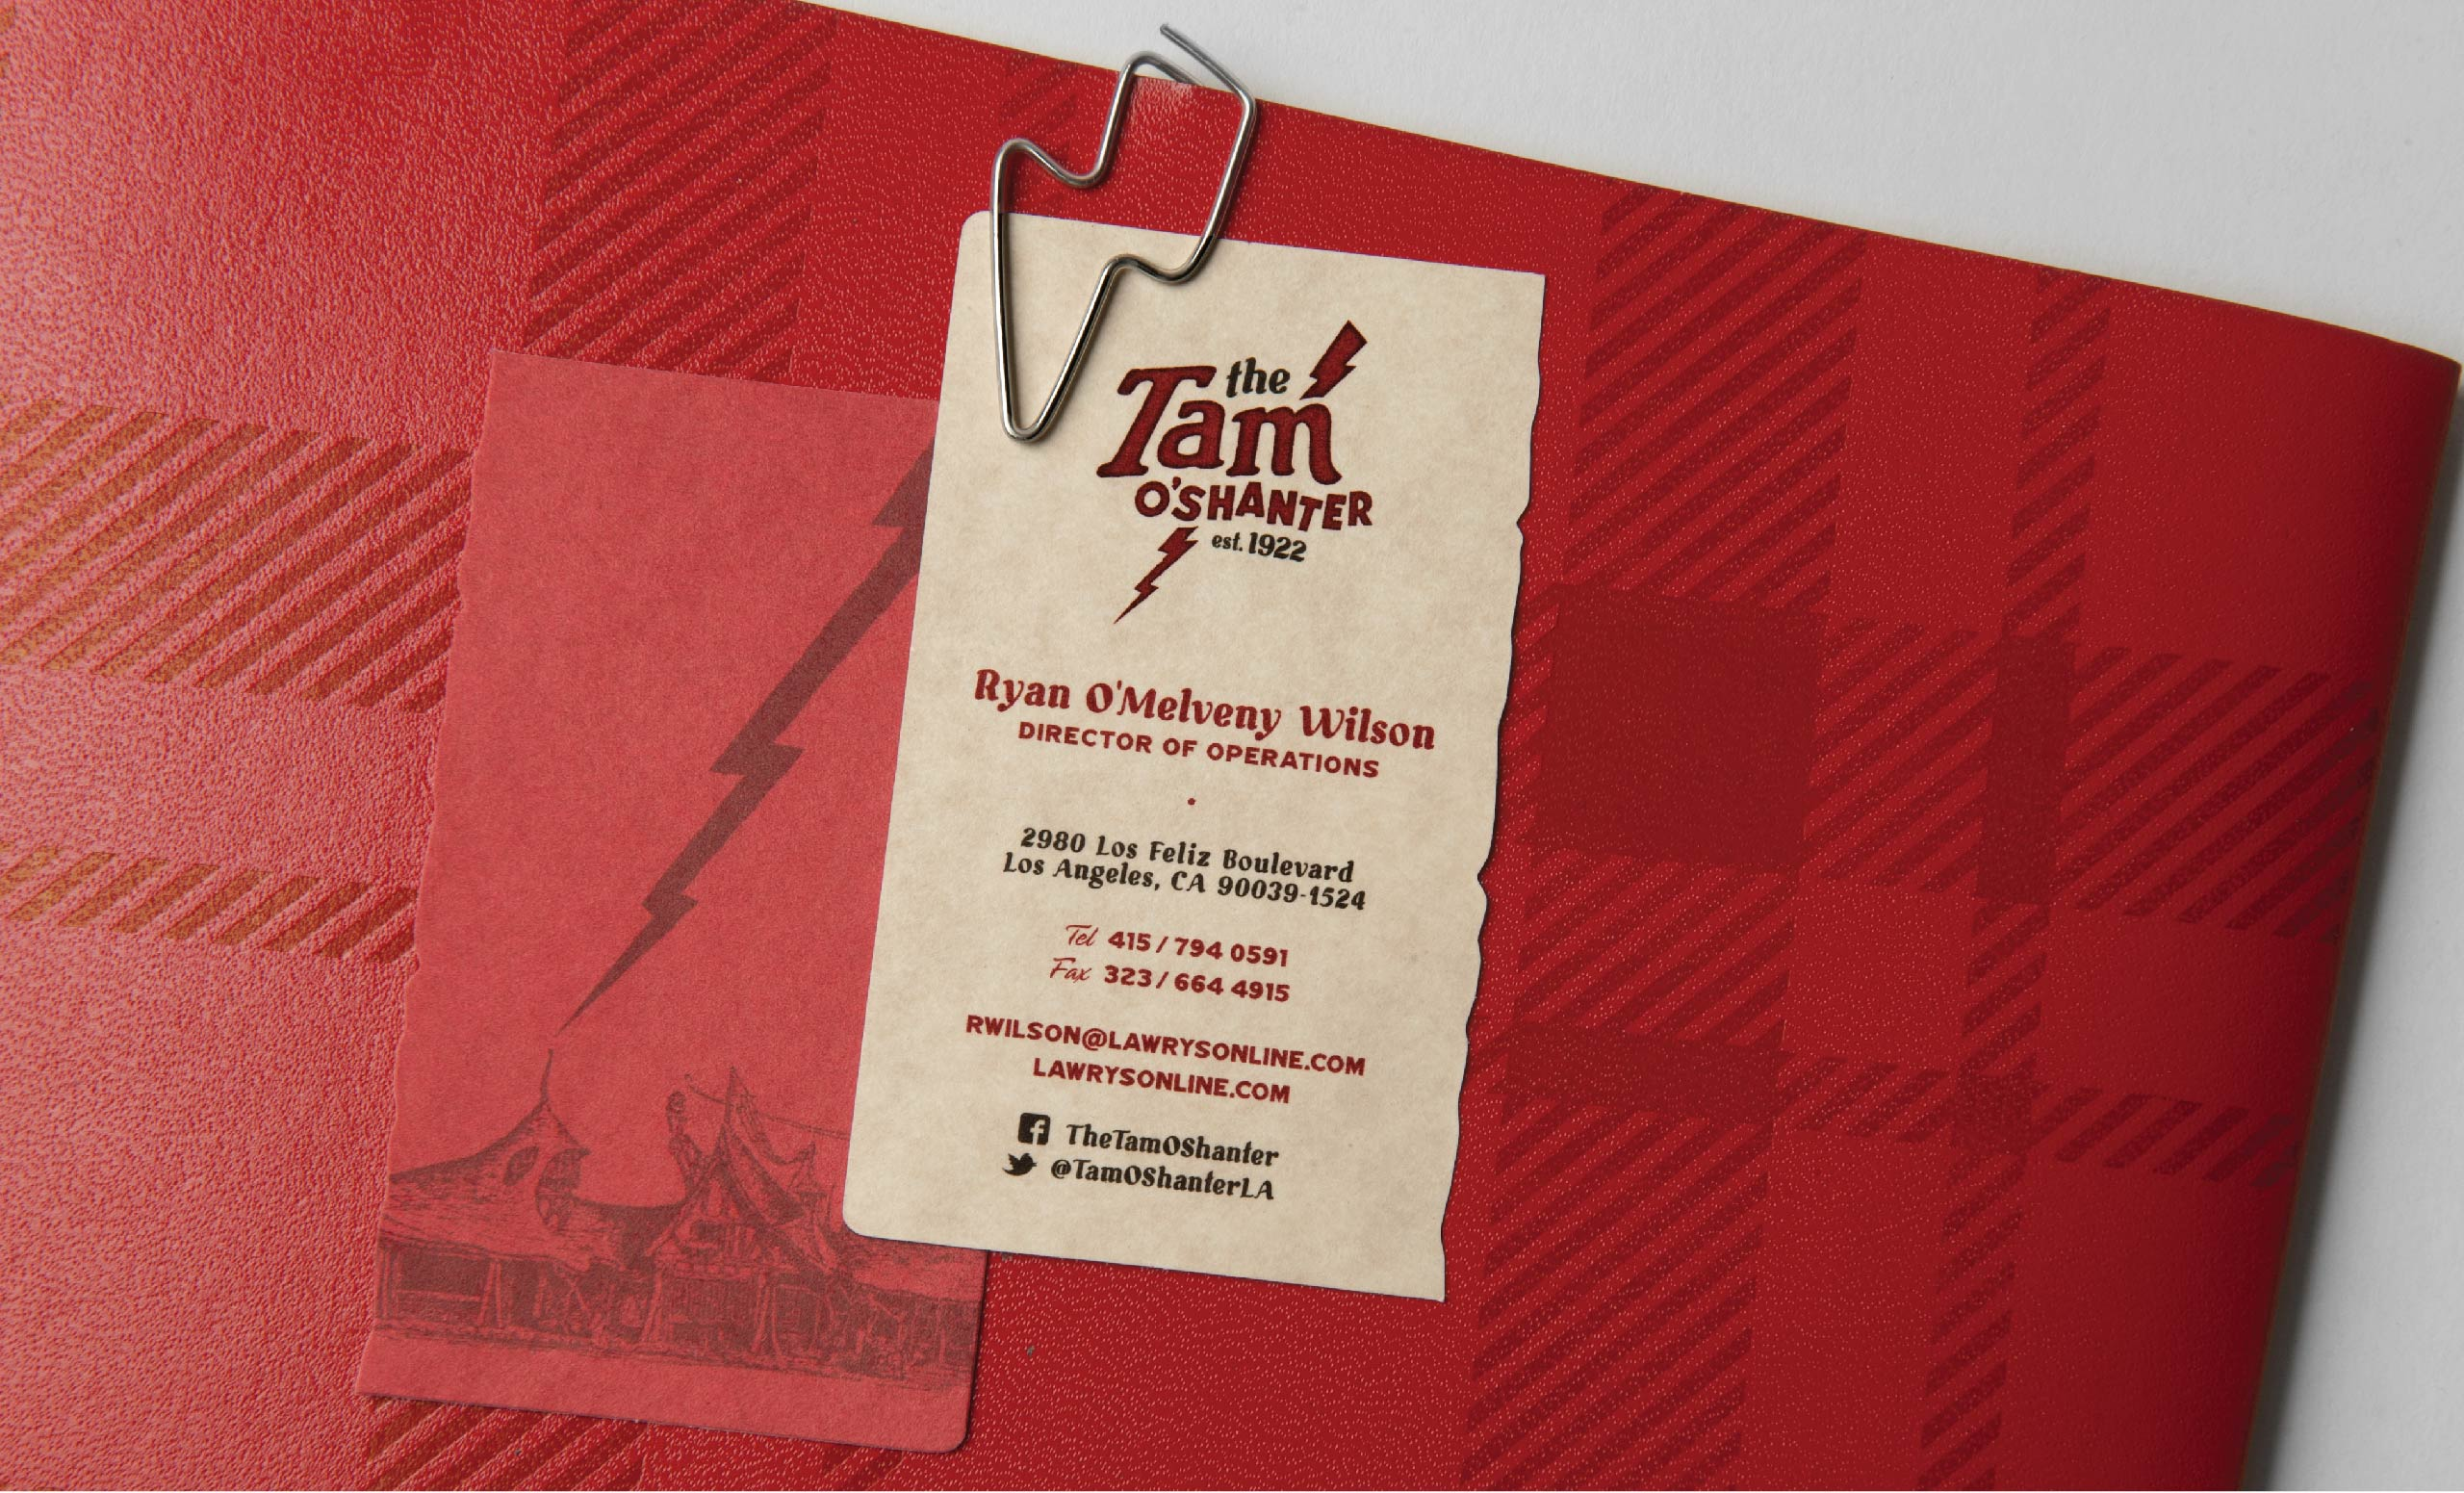 Yyes tam oshanter yyes custom elements of the brand include specially die cut business cards lightning bold paper clips for menu specials cards and brand applications including reheart Choice Image